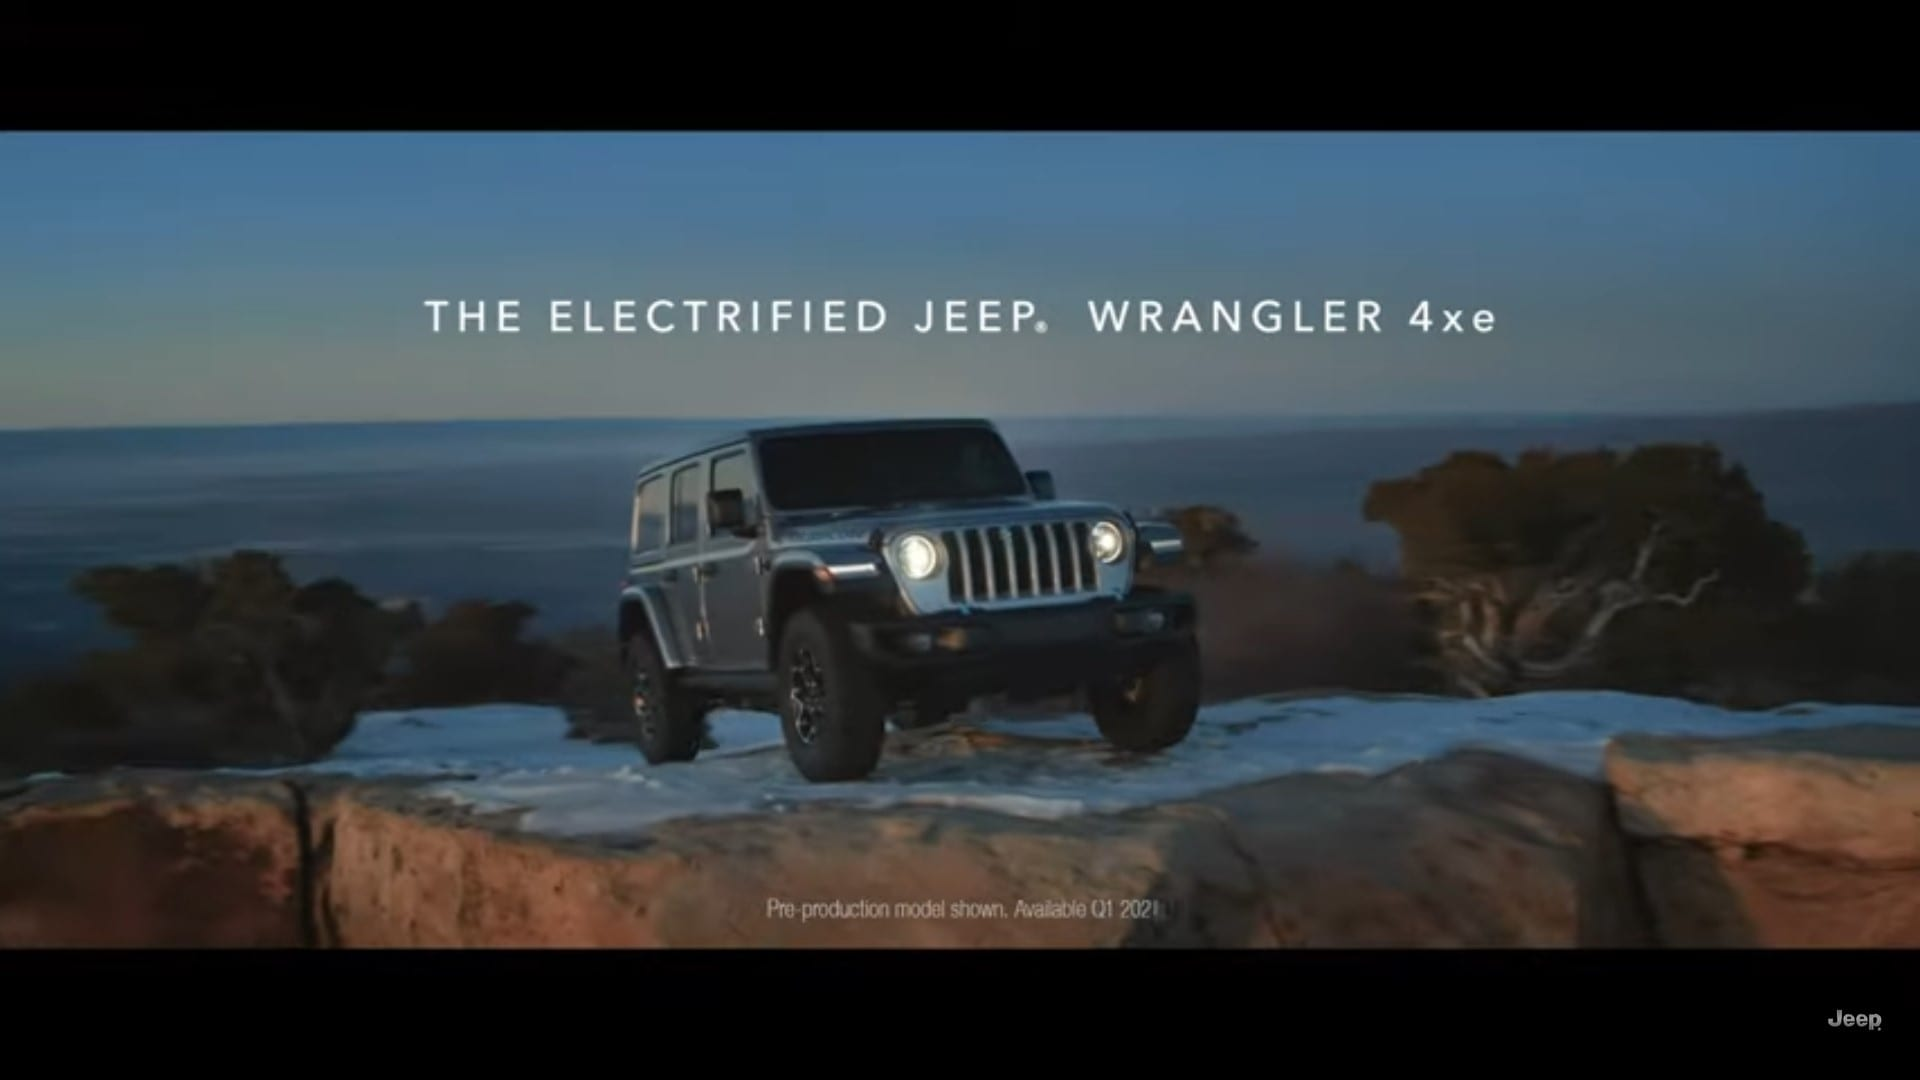 2021 Jeep – Nearly Silent